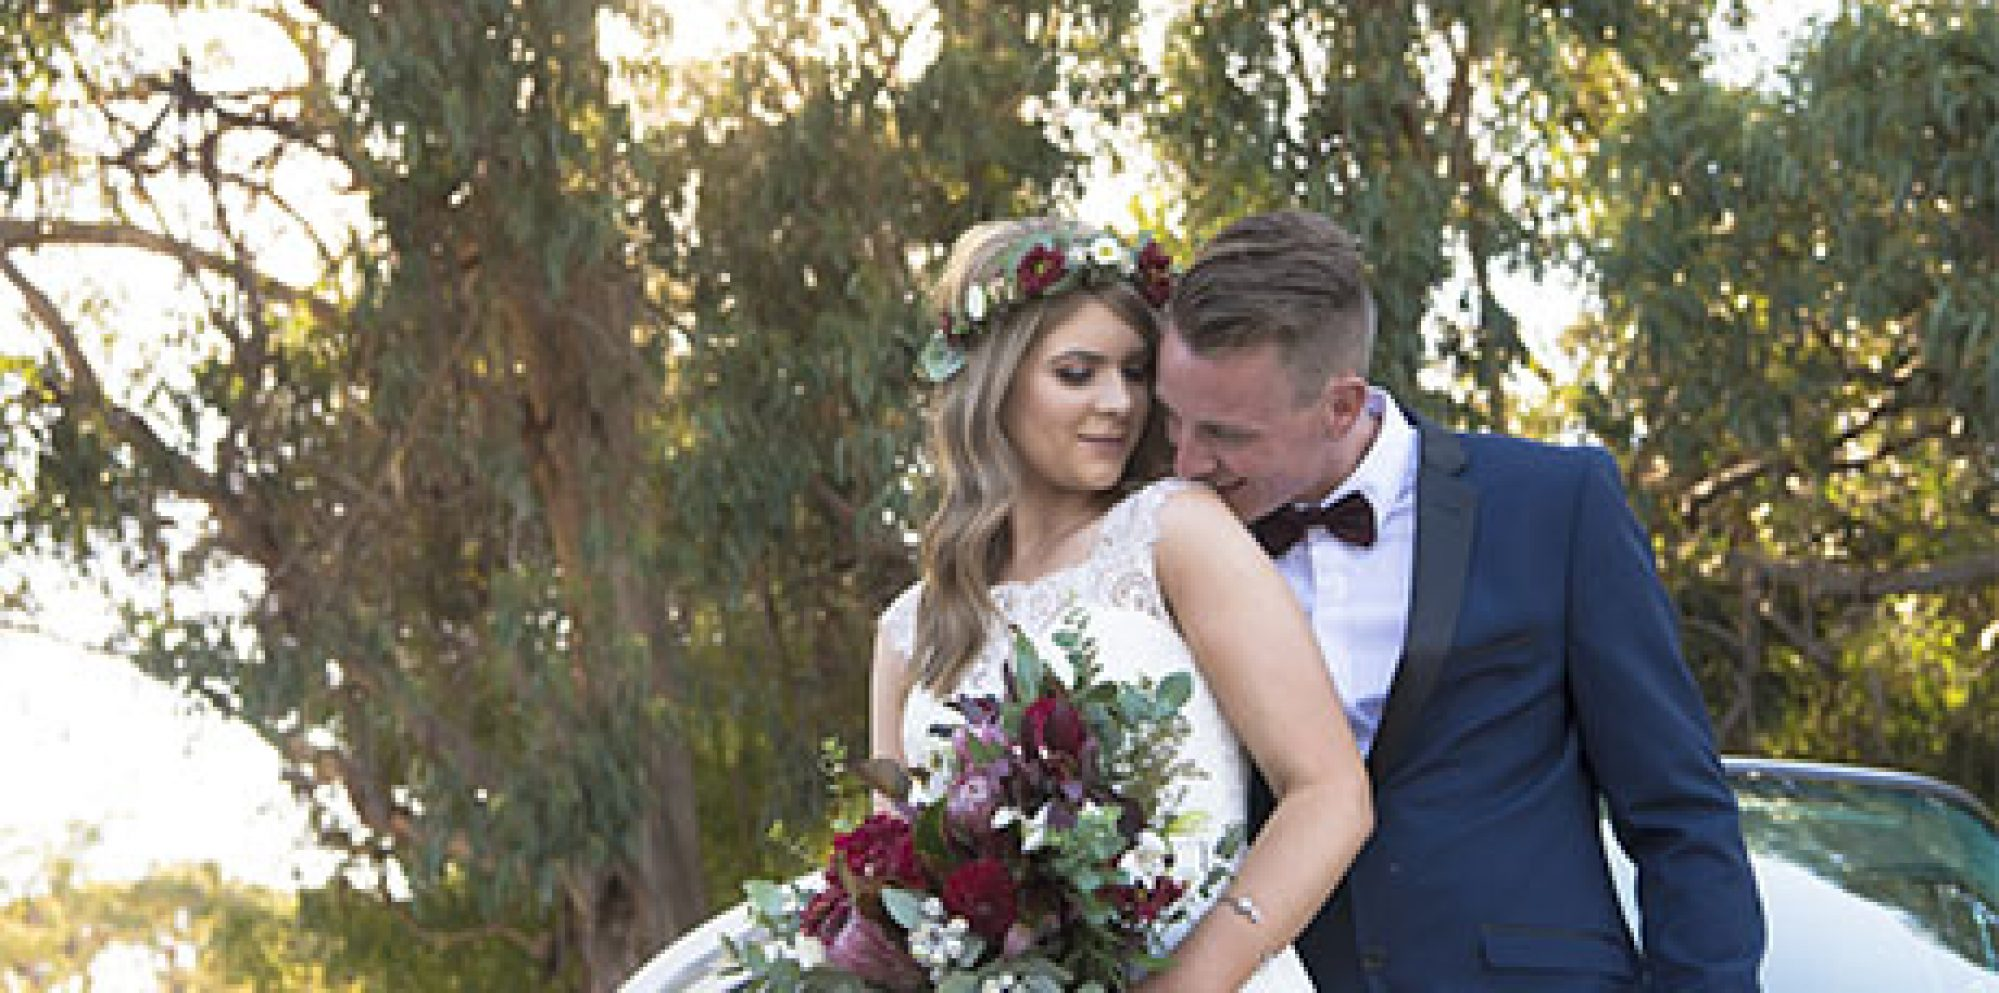 Nathan & siobhan | st. anne's winery wedding photographer melbourne